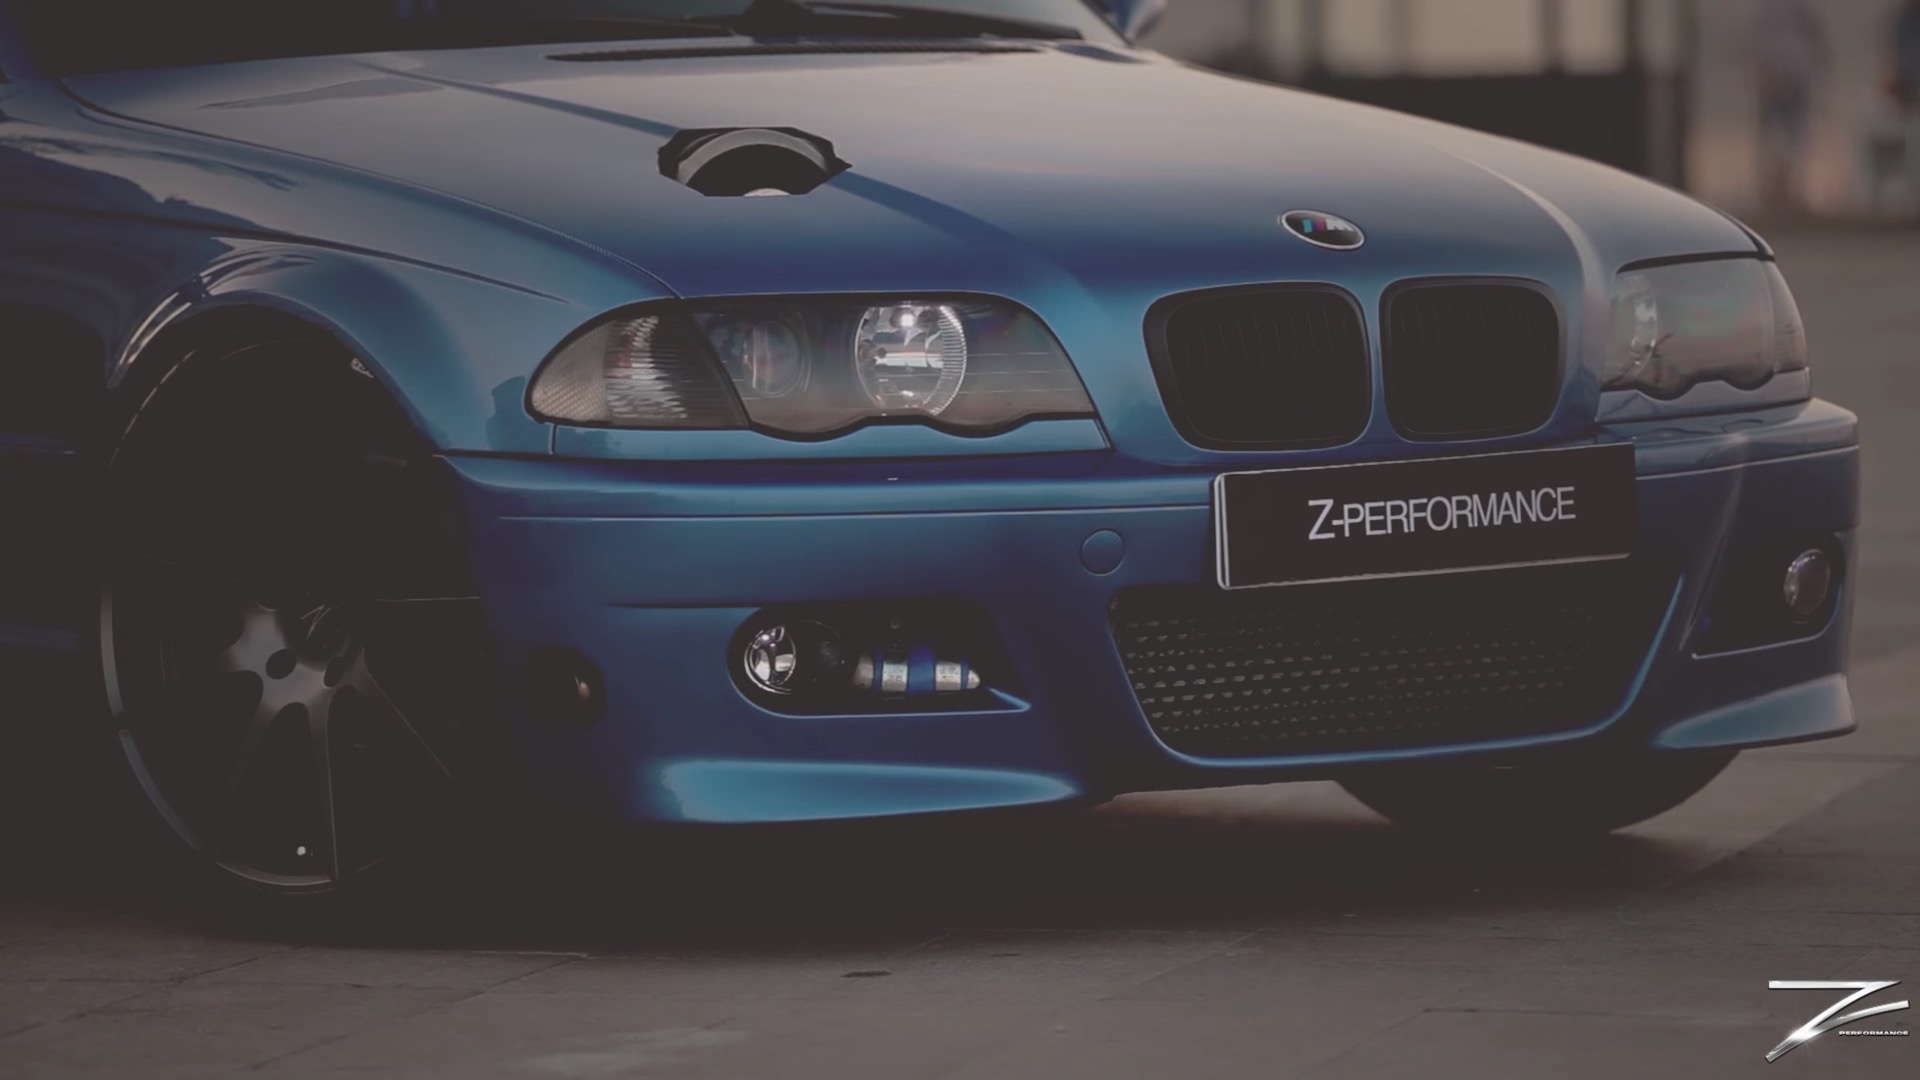 Bmw M3 E >> BMW M3 Turbo E46 Touring With 800 HP | DamnedWerk